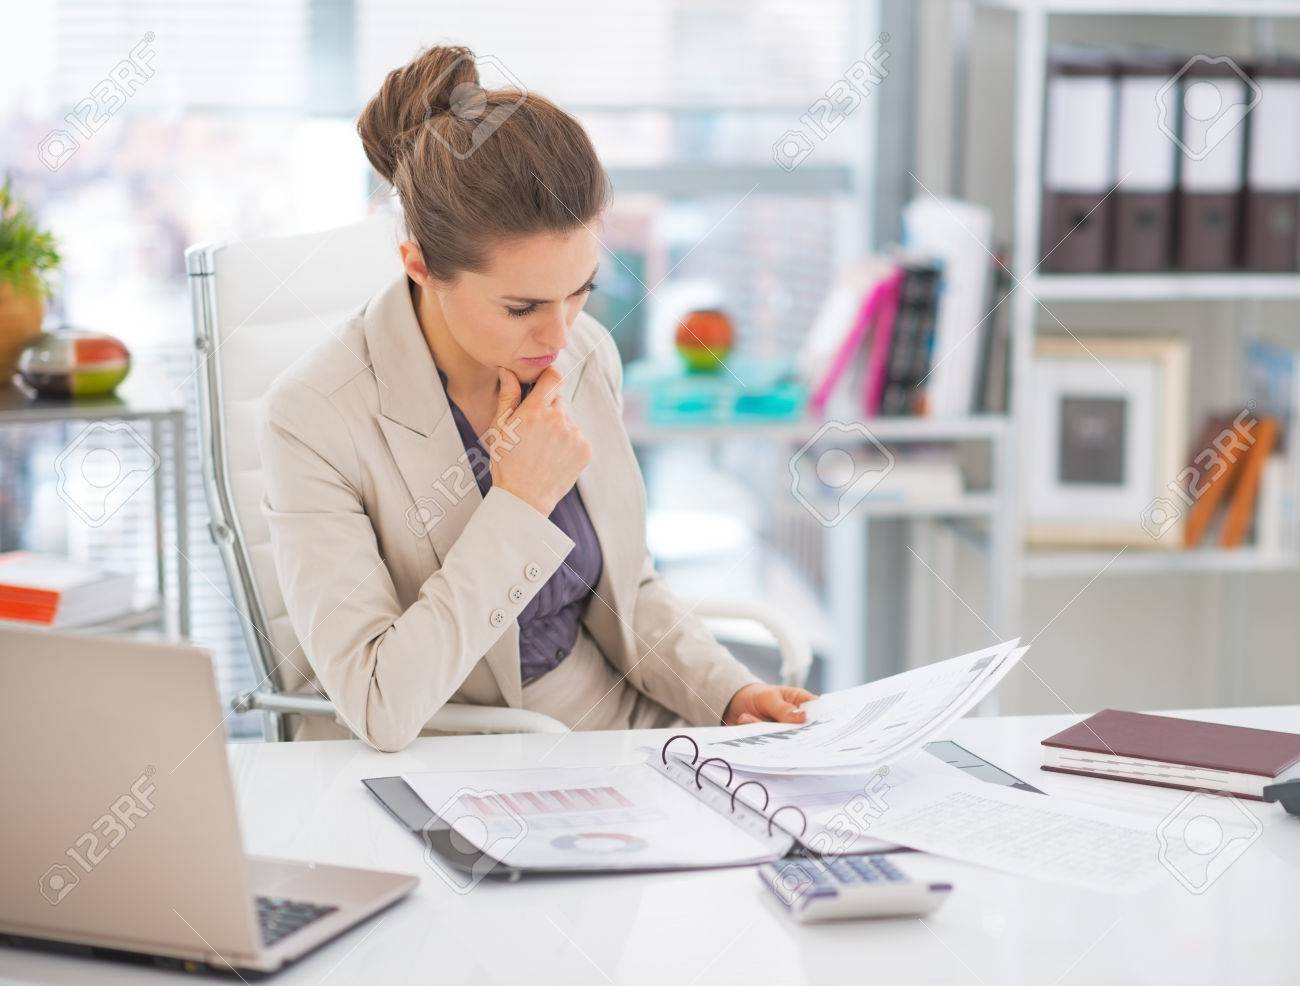 Thoughtful business woman documents in office Stock Photo - 29947776